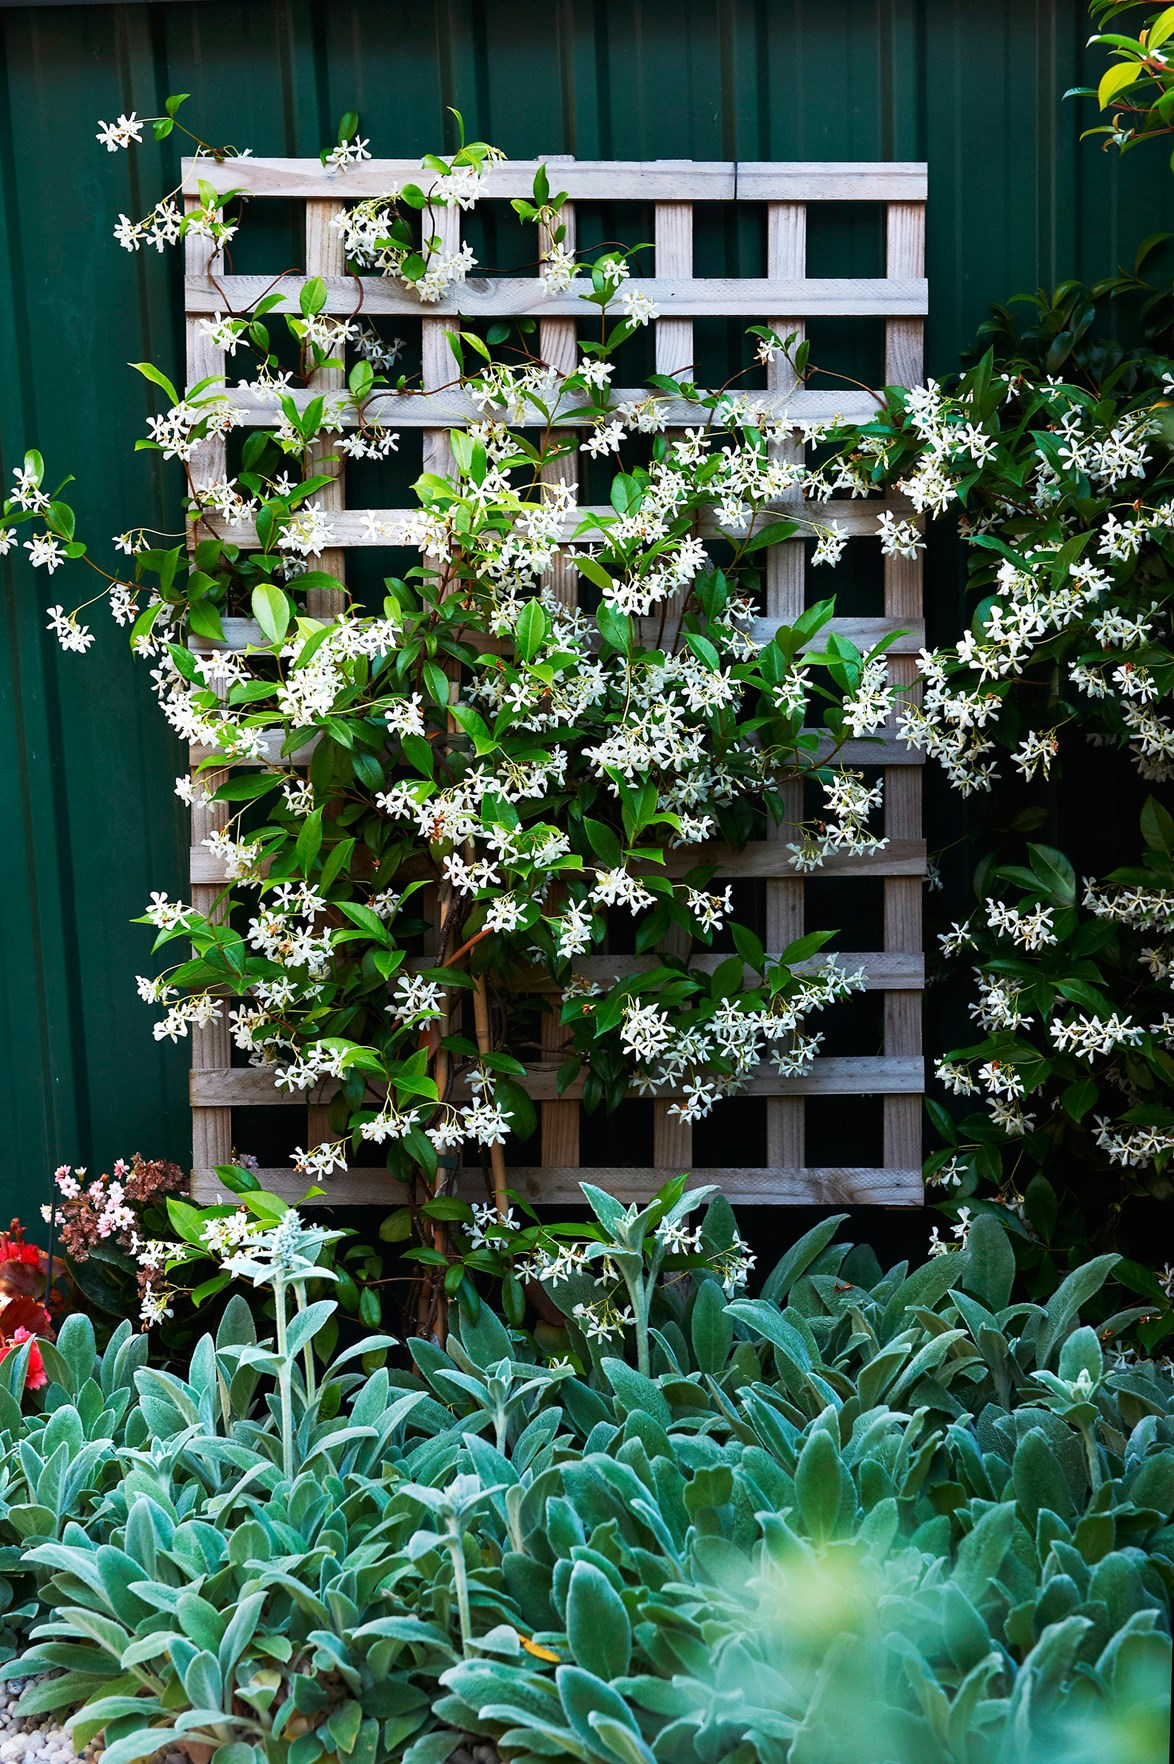 Star jasmine is the best choice for shady areas (Trachelospermum jasminoides).